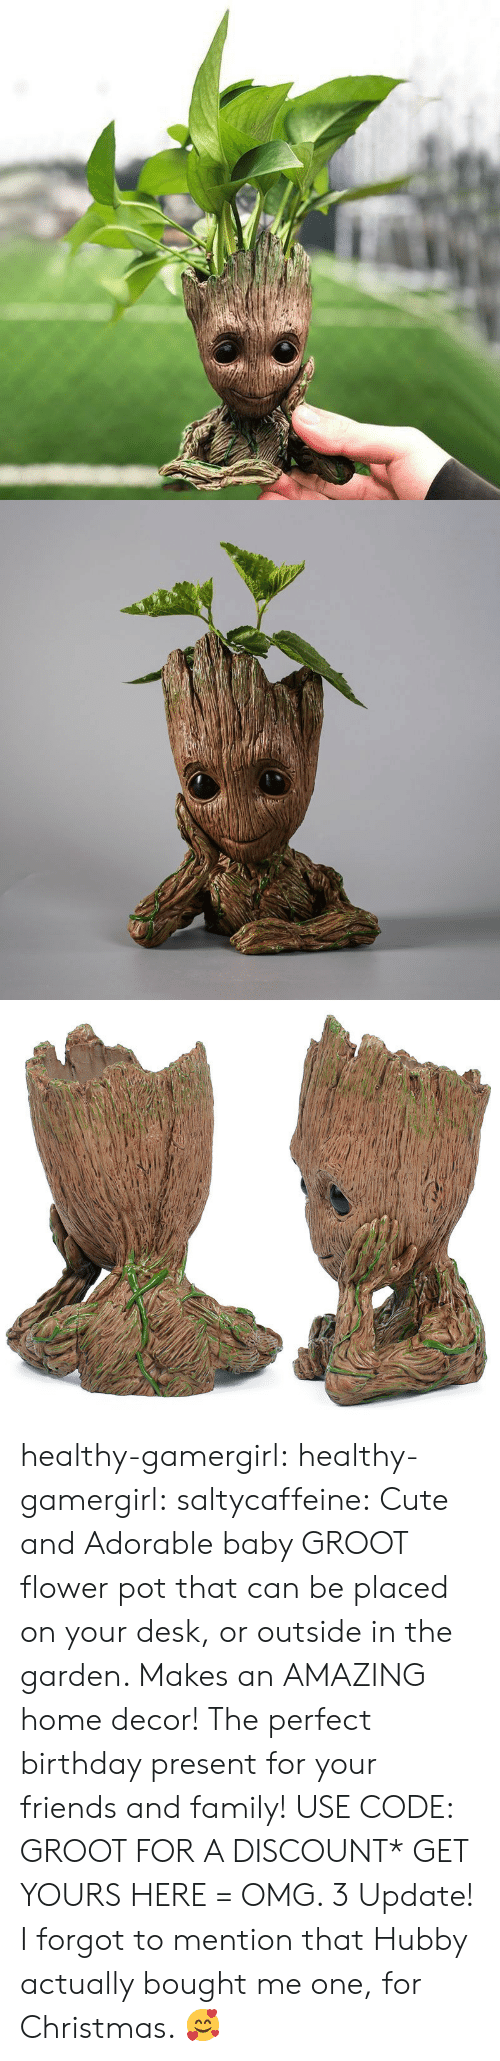 Birthday, Christmas, and Cute: healthy-gamergirl:  healthy-gamergirl:  saltycaffeine: Cute and Adorable baby GROOT flower pot that can be placed on your desk, or outside in the garden. Makes an AMAZING home decor! The perfect birthday present for your friends and family! USE CODE: GROOT FOR A DISCOUNT* GET YOURS HERE=  OMG. 3  Update! I forgot to mention that Hubby actually bought me one, for Christmas. 🥰